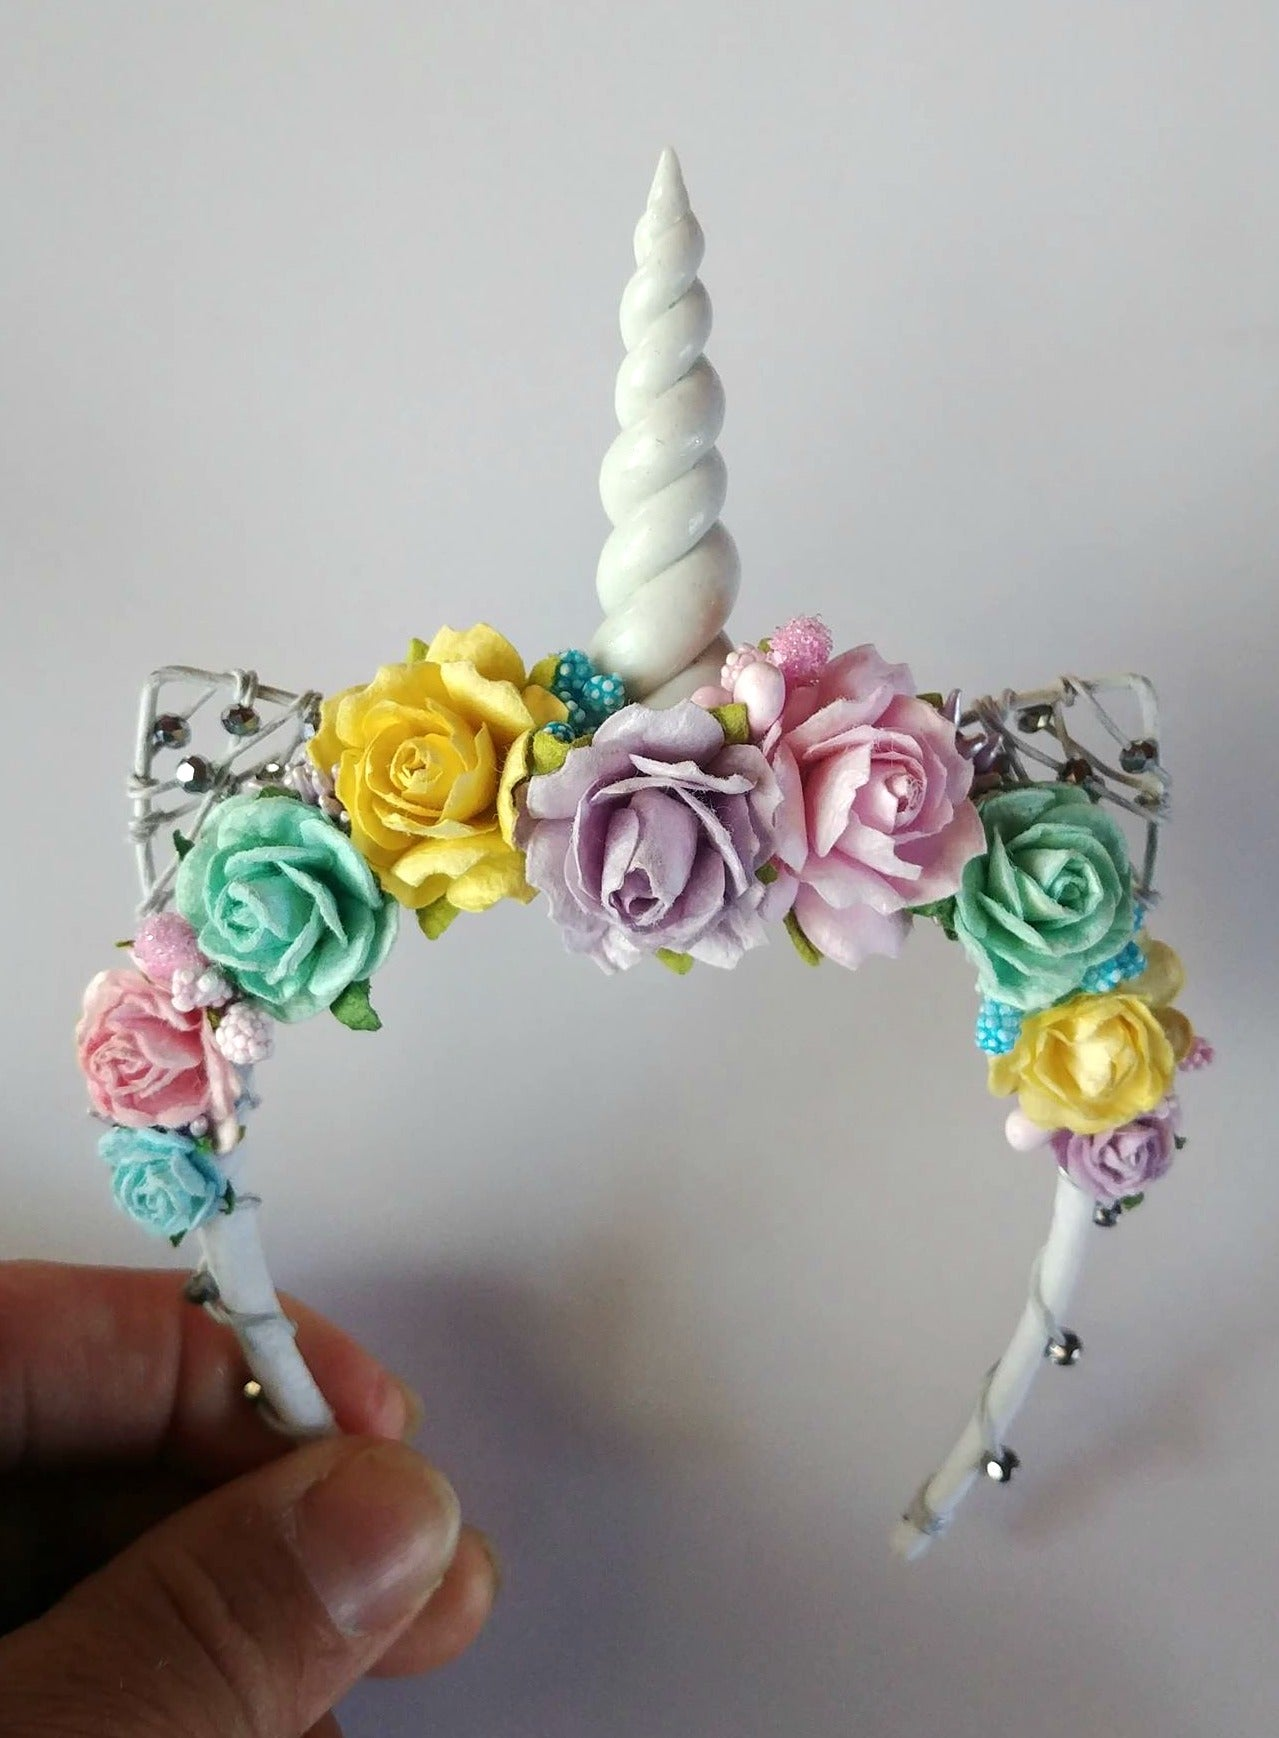 Zazou Dolls Exclusive Unicorn headband for 18 Inch dolls such as Journey, OG and American Girl